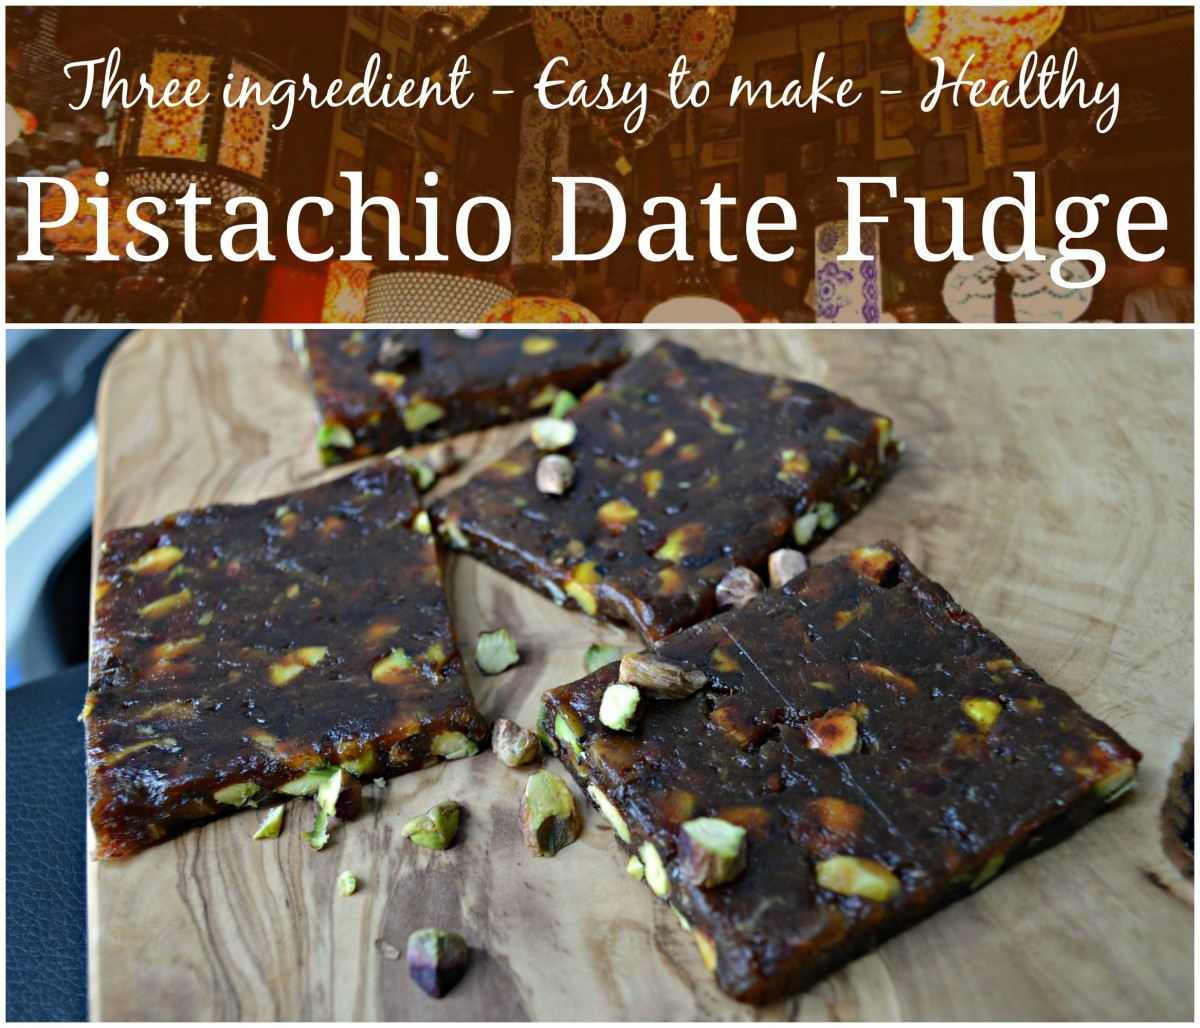 Dates & Nuts are both superfoods. Combine them in one completely sugarless and healthy dessert and enjoy a guilt free Pistachio Date Fudge